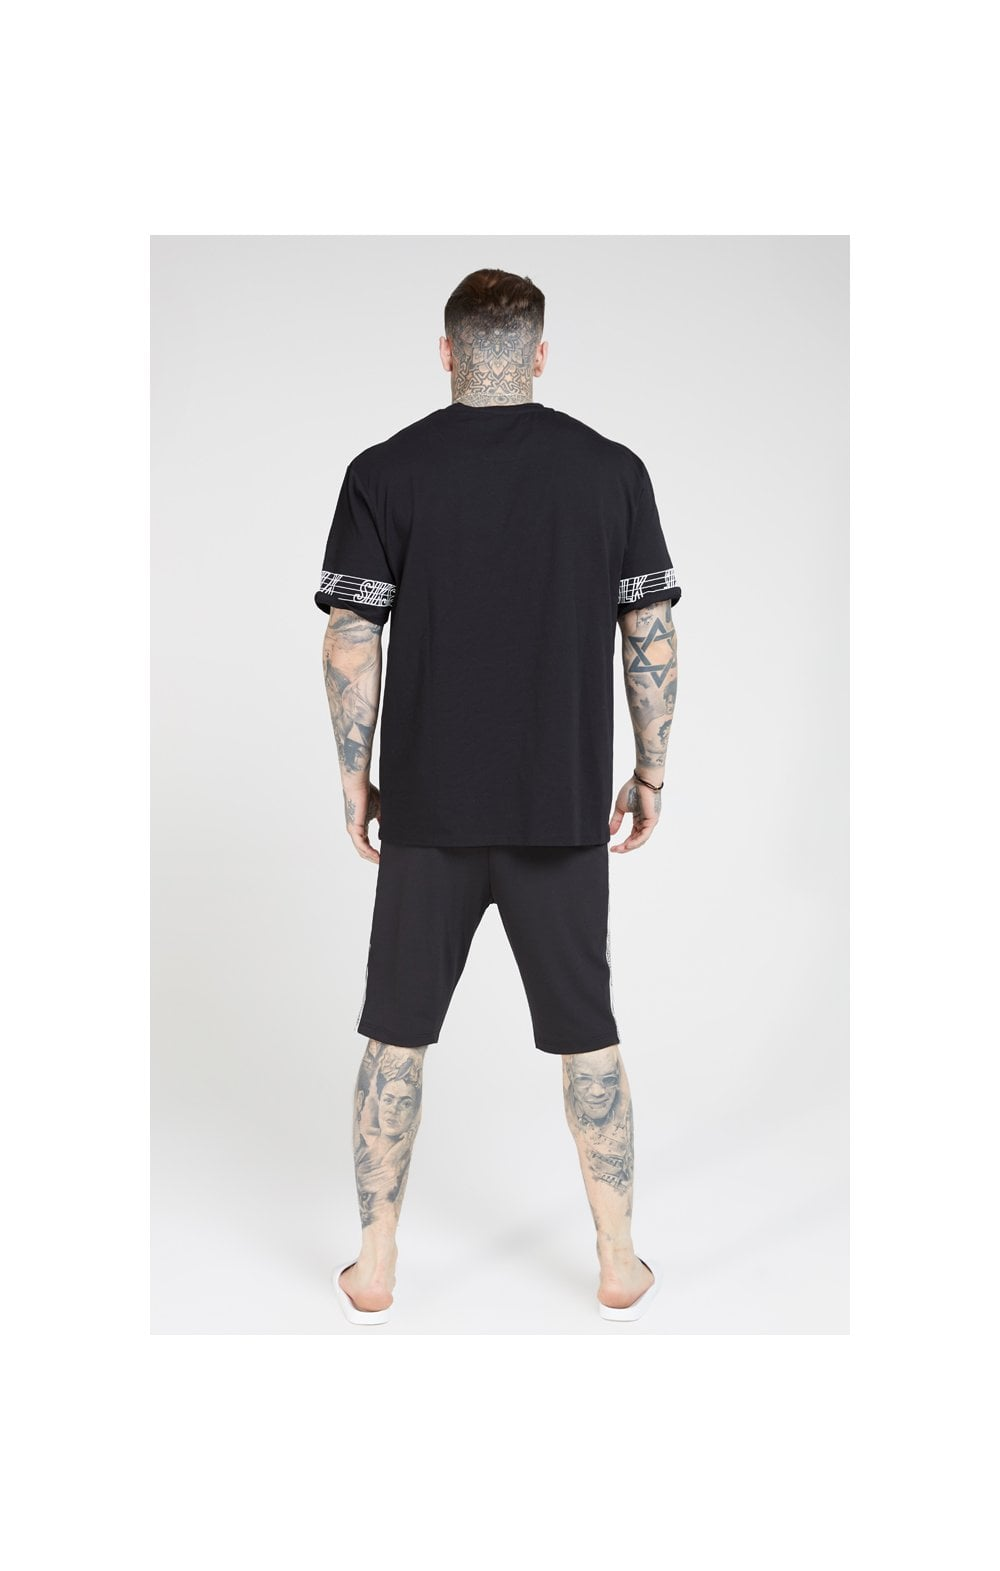 Load image into Gallery viewer, SikSilk Zonal Runner Shorts - Black (7)